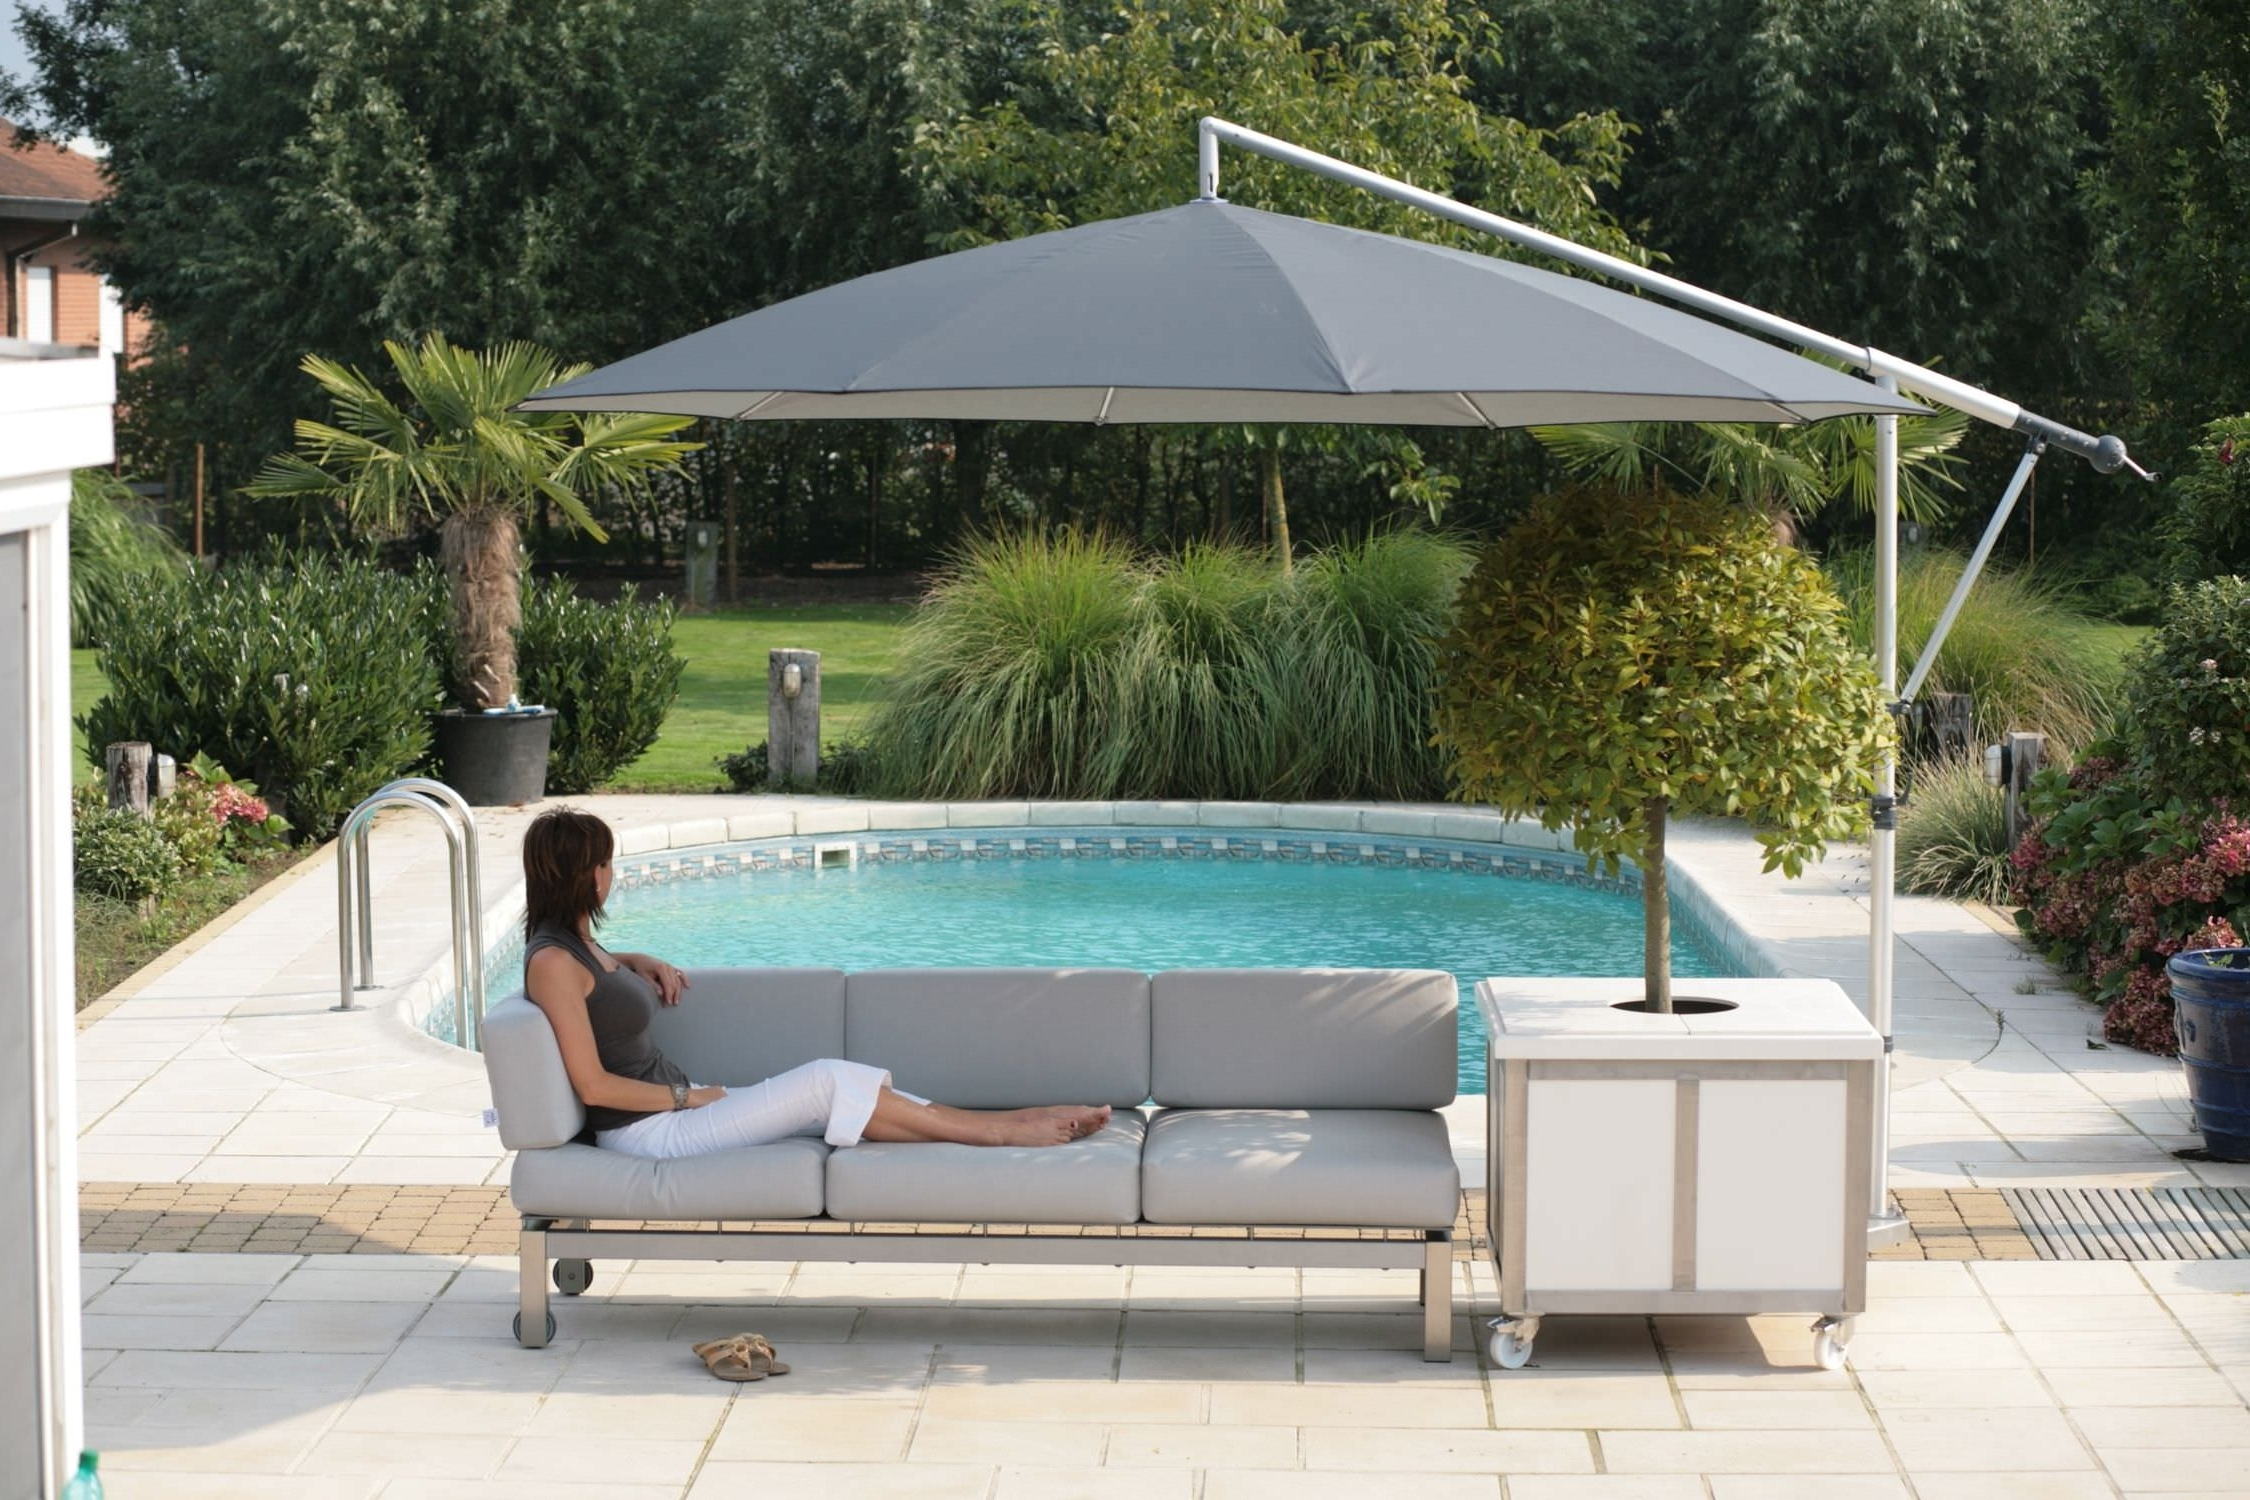 Offset Patio Umbrellas Throughout Popular Offset Sun Umbrella – Best Outdoor Patio Umbrella (View 12 of 20)